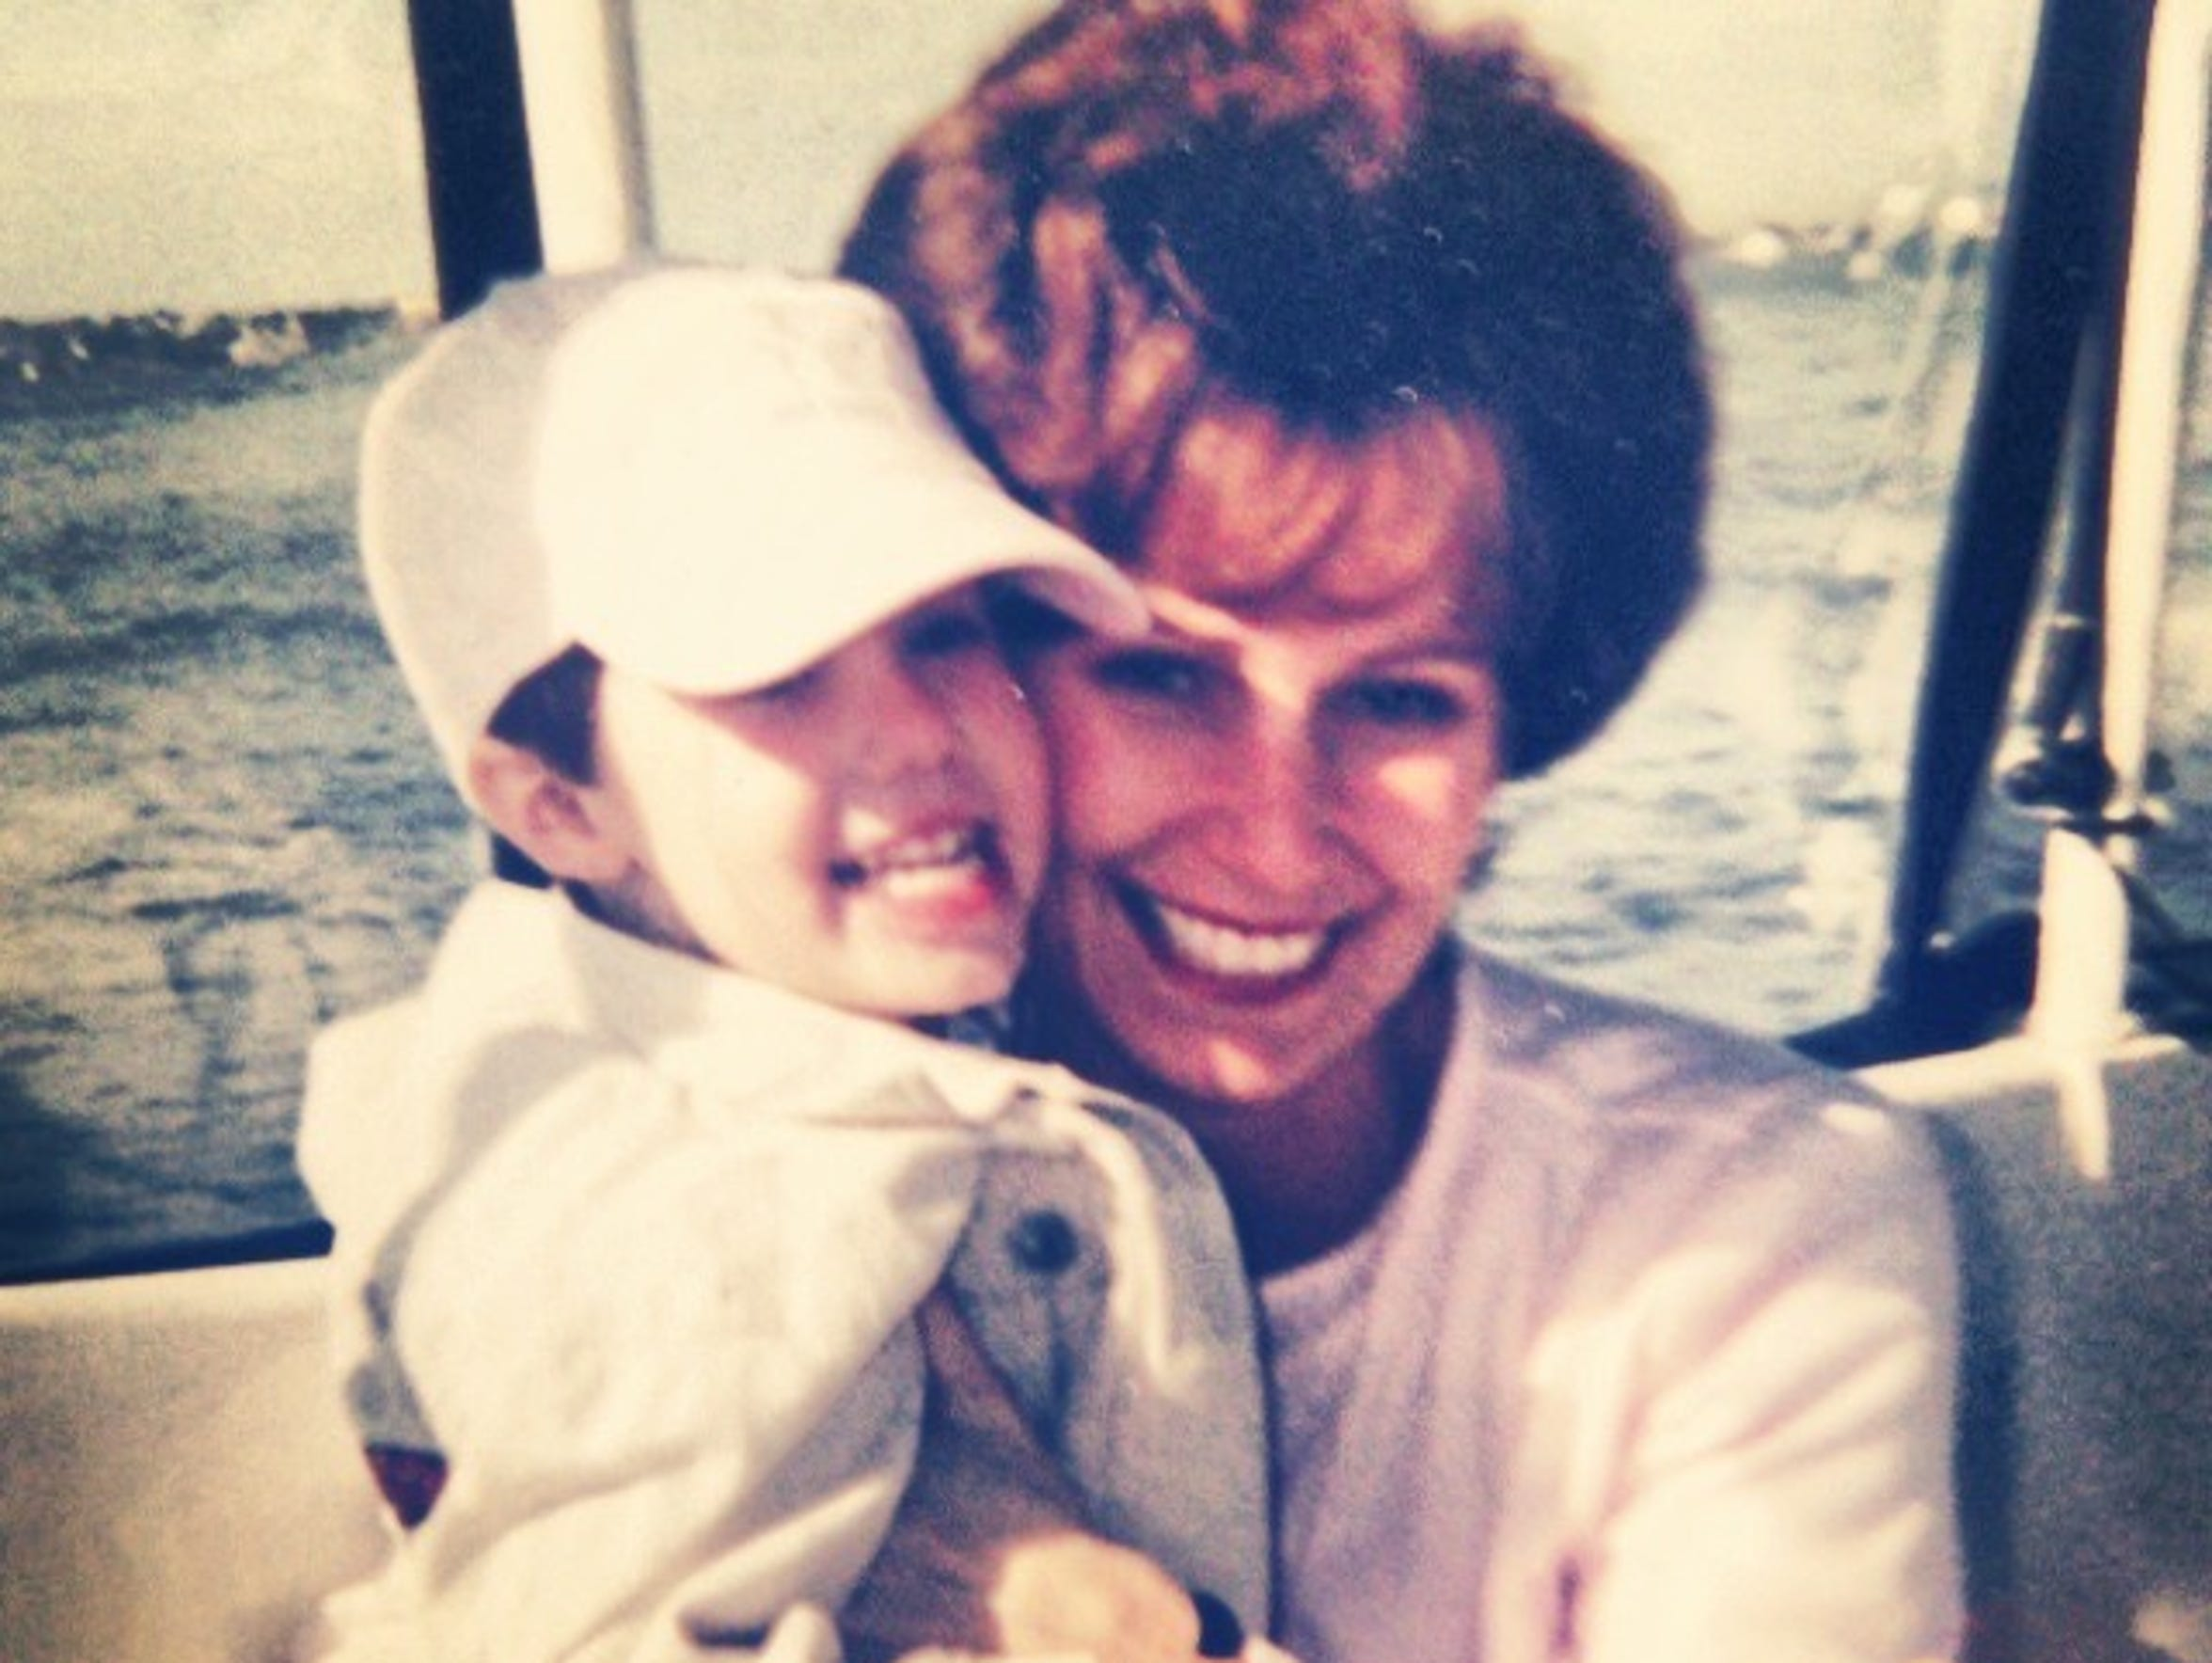 Evans with her mother, Sherry, before she passed.